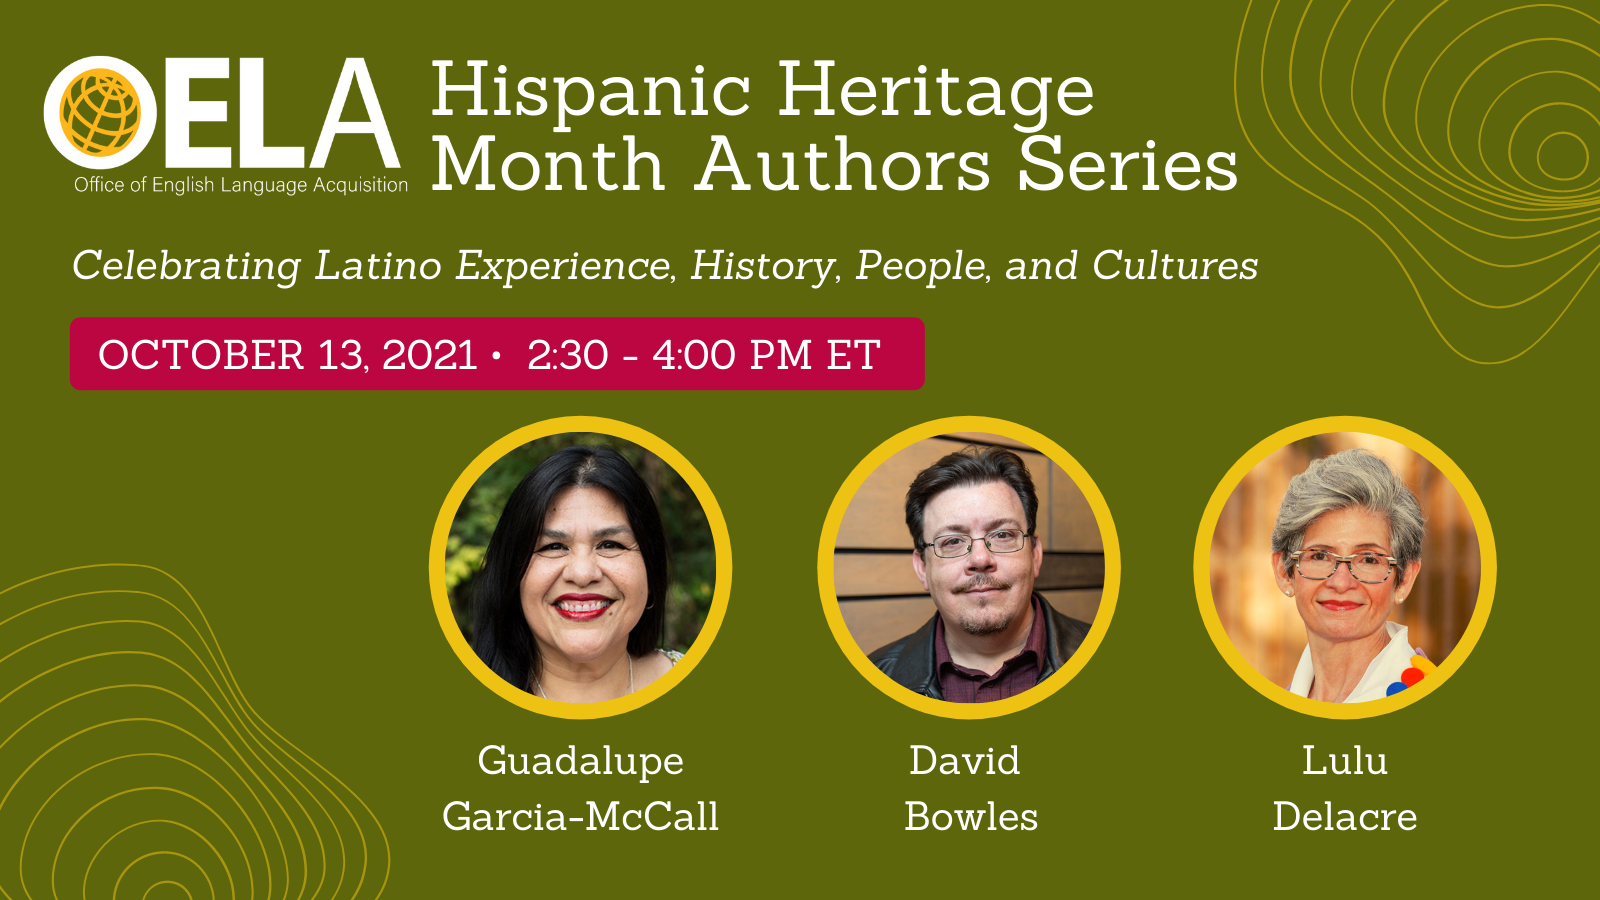 Hispanic Heritage Month Authors Series: Celebrating Latino Experience, History, People, and Cultures